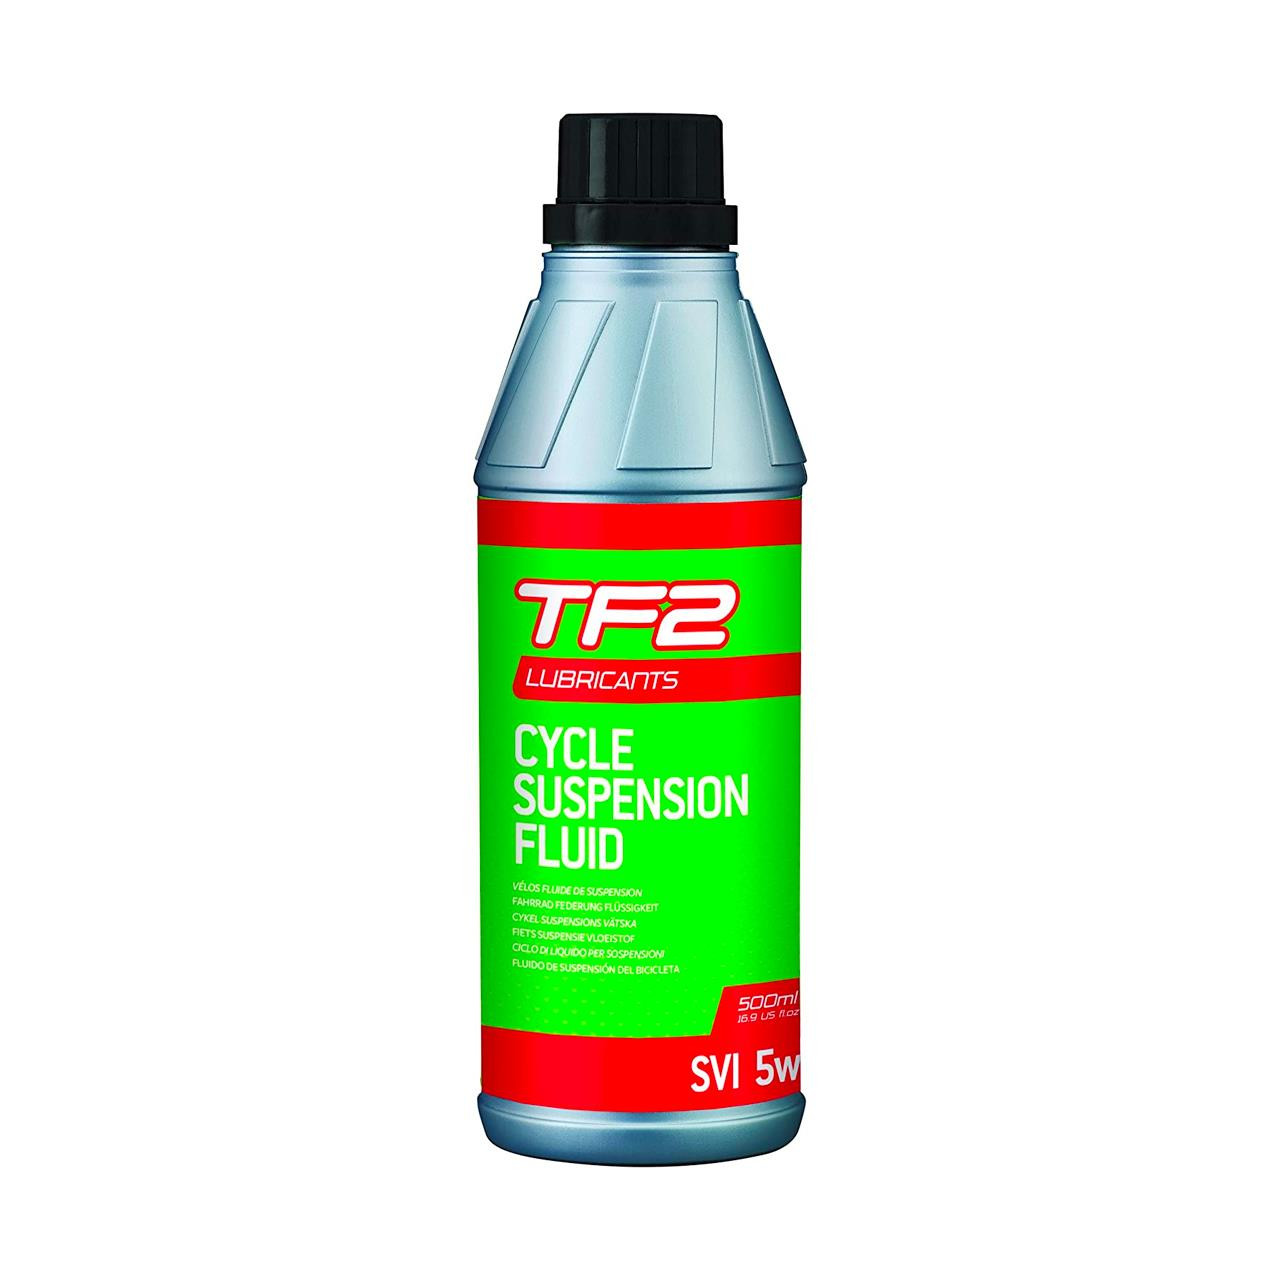 TF2 Cycle Suspension Fluid 5wt (500ml)